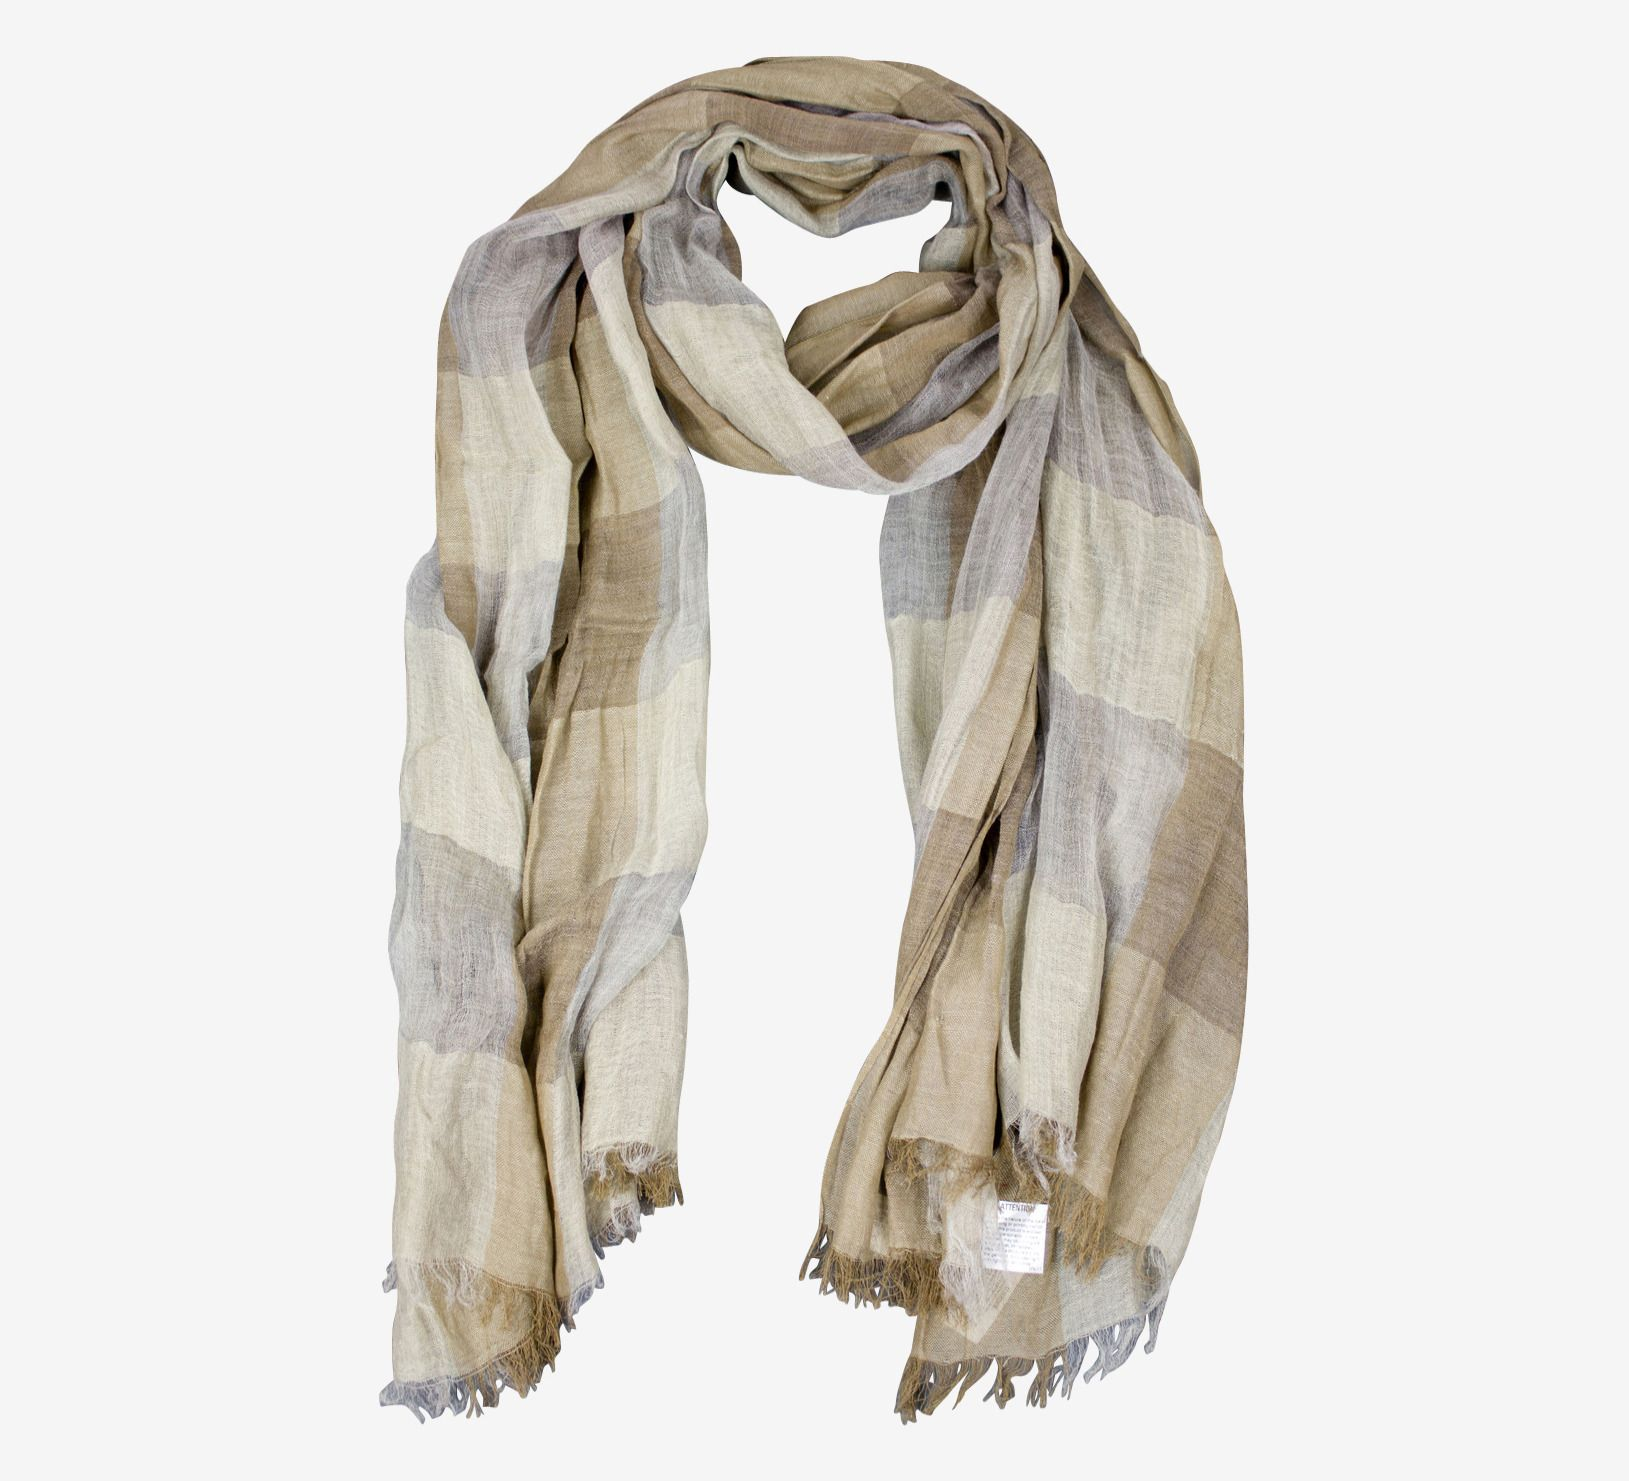 """NWT PAS DE CALAIS Grey/Brown Checked Rectangle Scarf 80"""" x 43"""" Measurements: Length: 80"""" Width: 43"""" 100% Authentic Fabric: 72% Cotton, 24% Linen, 4% Cashmere Condition: New with tags  Not Returnable V"""